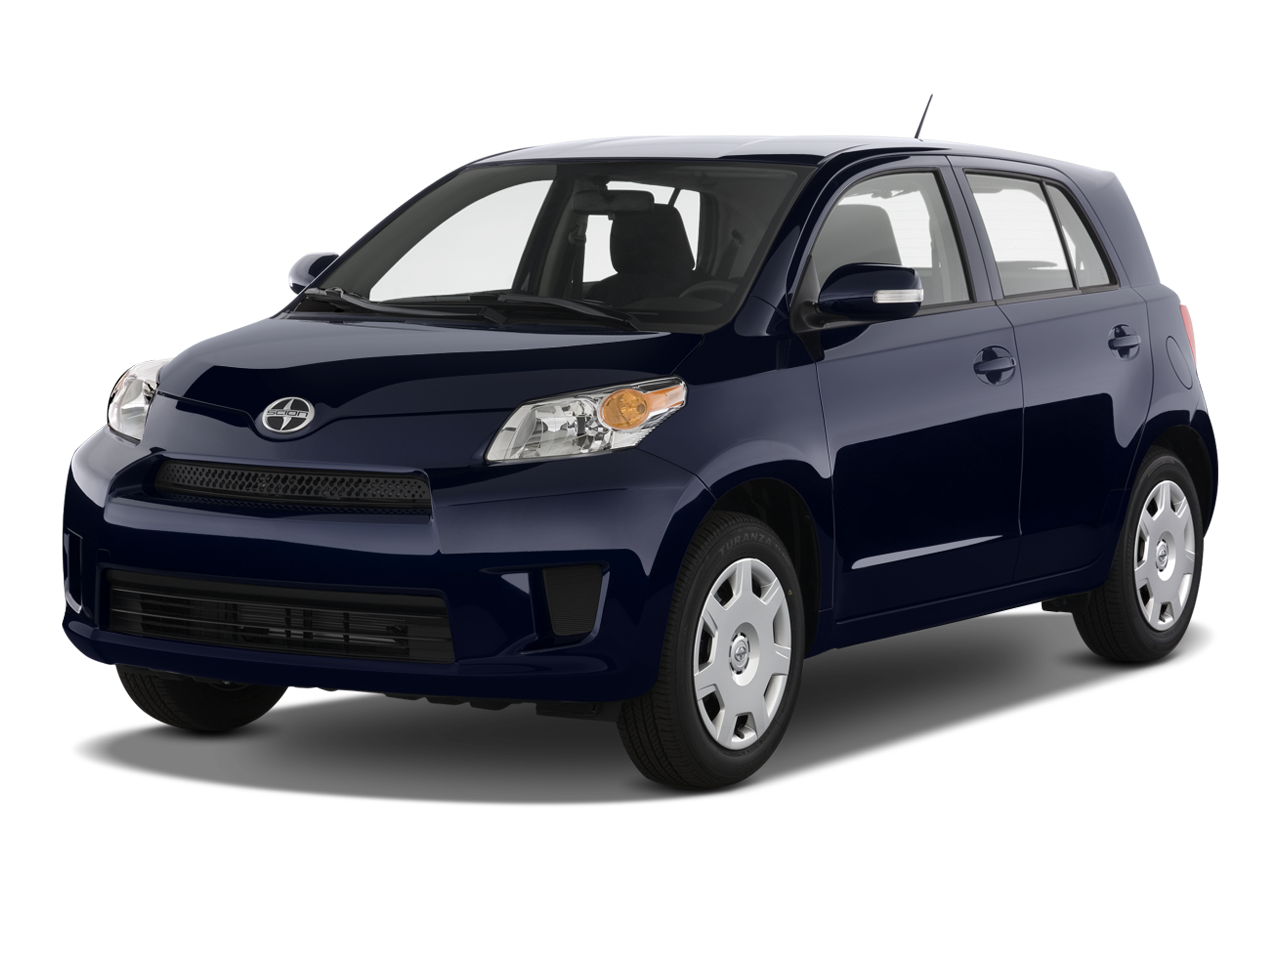 51 The Best 2020 Scion Xd Reviews Model